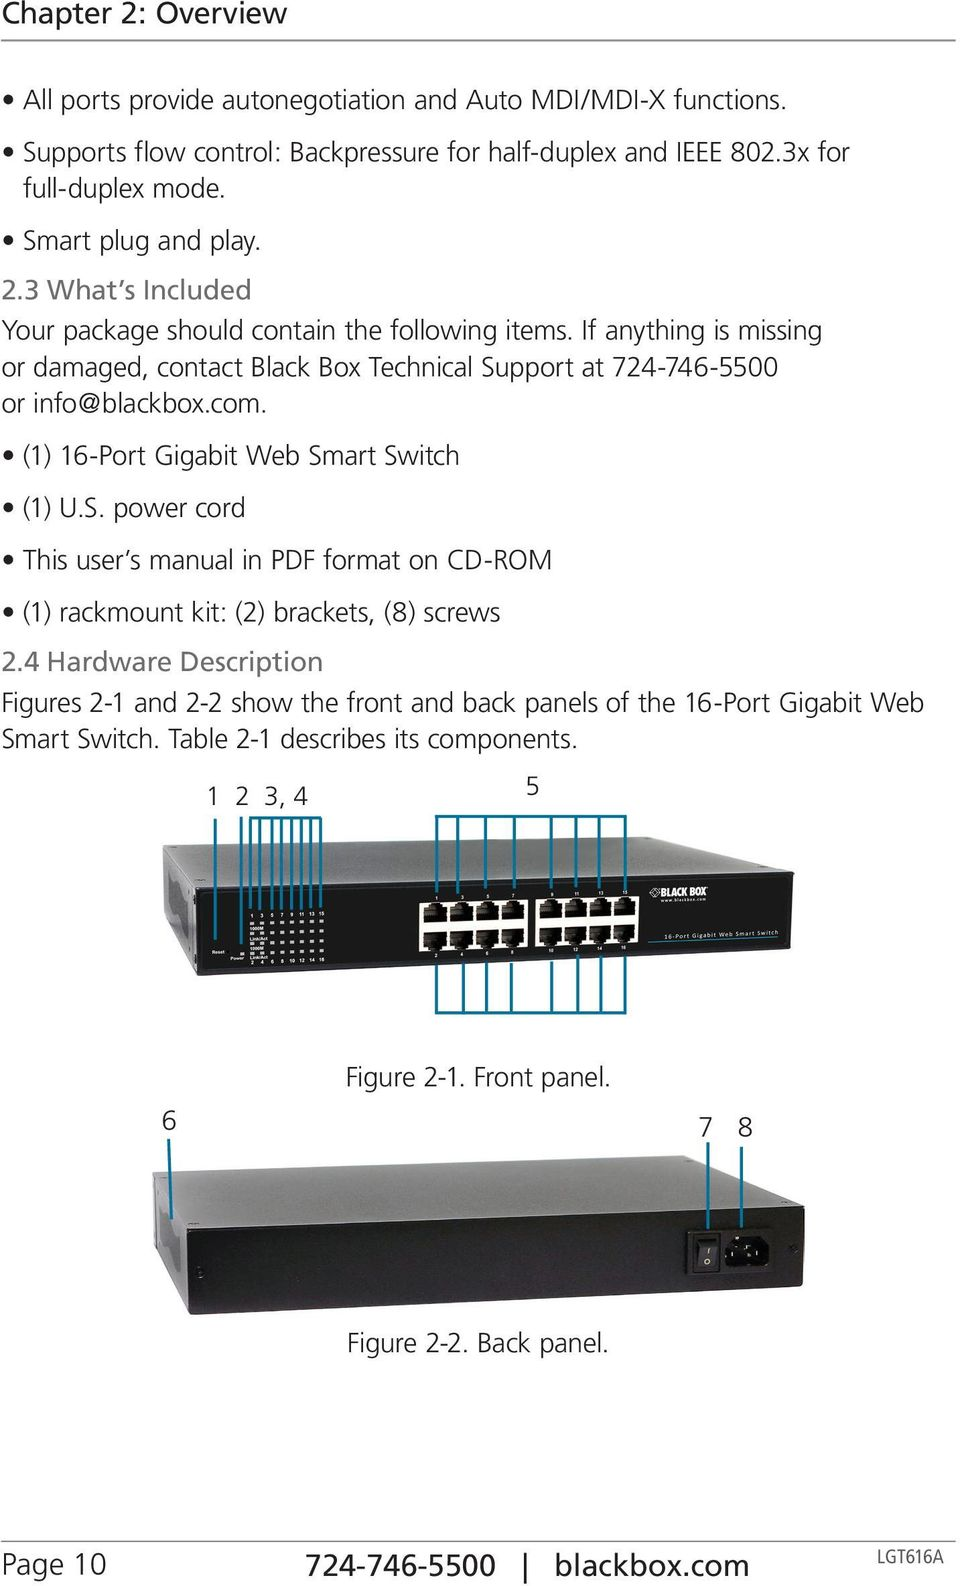 If anything is missing or damaged, contact Black Box Technical Support at 724-746-5500 or info@blackbox.com. (1) 16-Port Gigabit Web Smart Switch (1) U.S. power cord This user s manual in PDF format on CD-ROM (1) rackmount kit: (2) brackets, (8) screws 2.